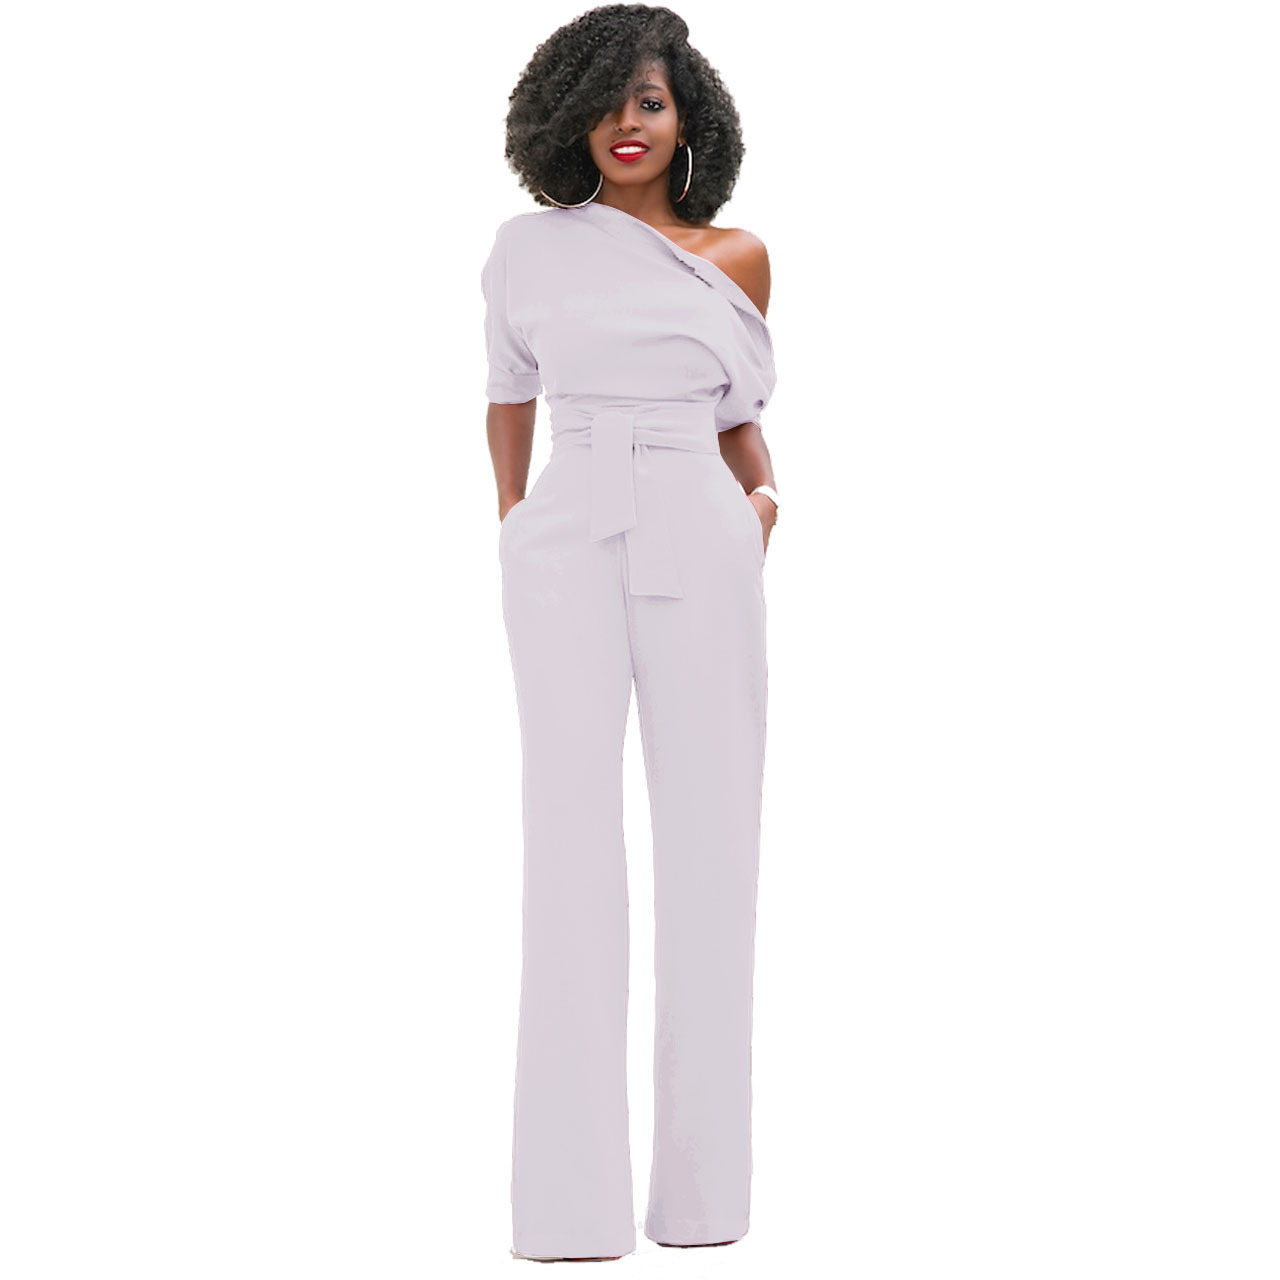 23241d33921c Detail Feedback Questions about Bodycon Off Shoulder Plus Size Solid Jumpsuits  Romper Ruffles Solid Wide Leg Overalls for Women Short Sleeve One Piece ...